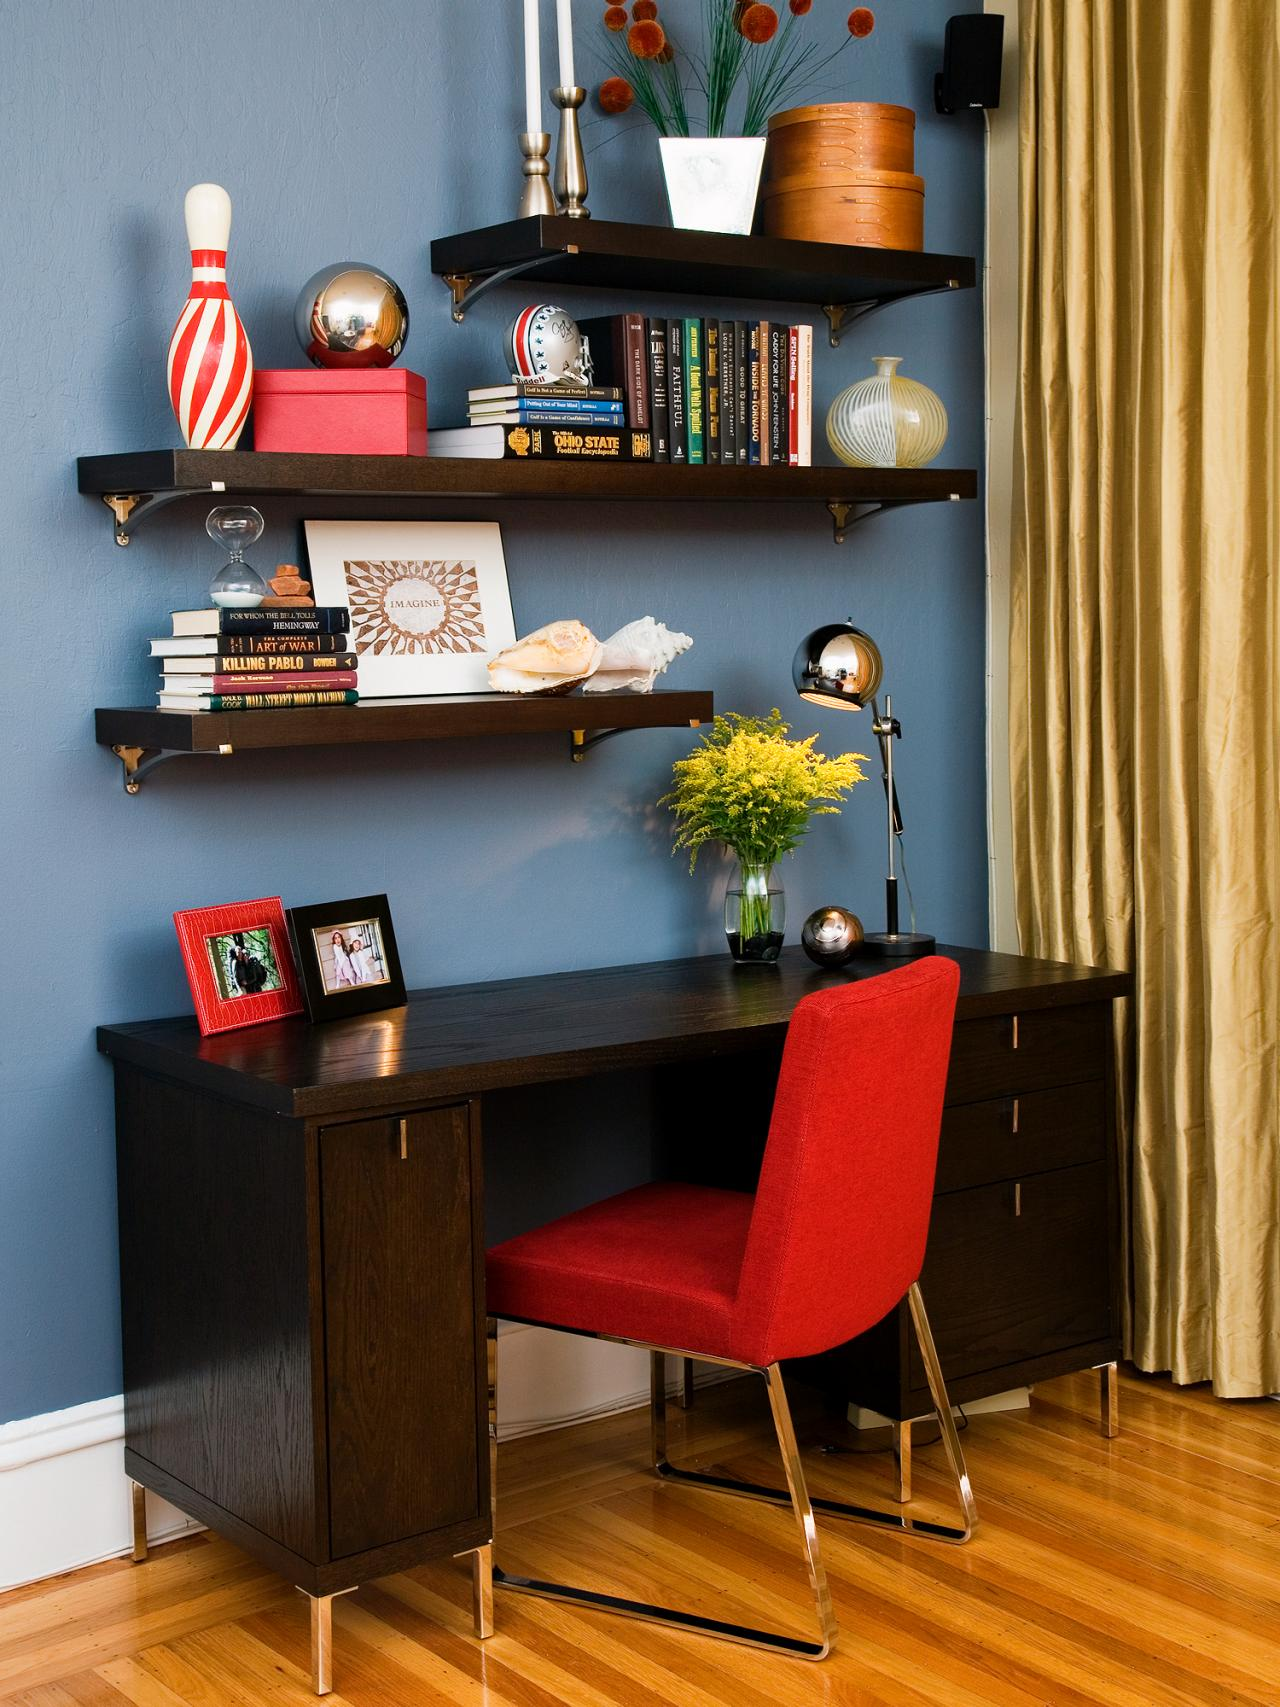 interior design unique storage with exciting ikea cozy dark wood desk red parsons chair and floating shelves for elegant office room corner lack shelf kitchen organization bins